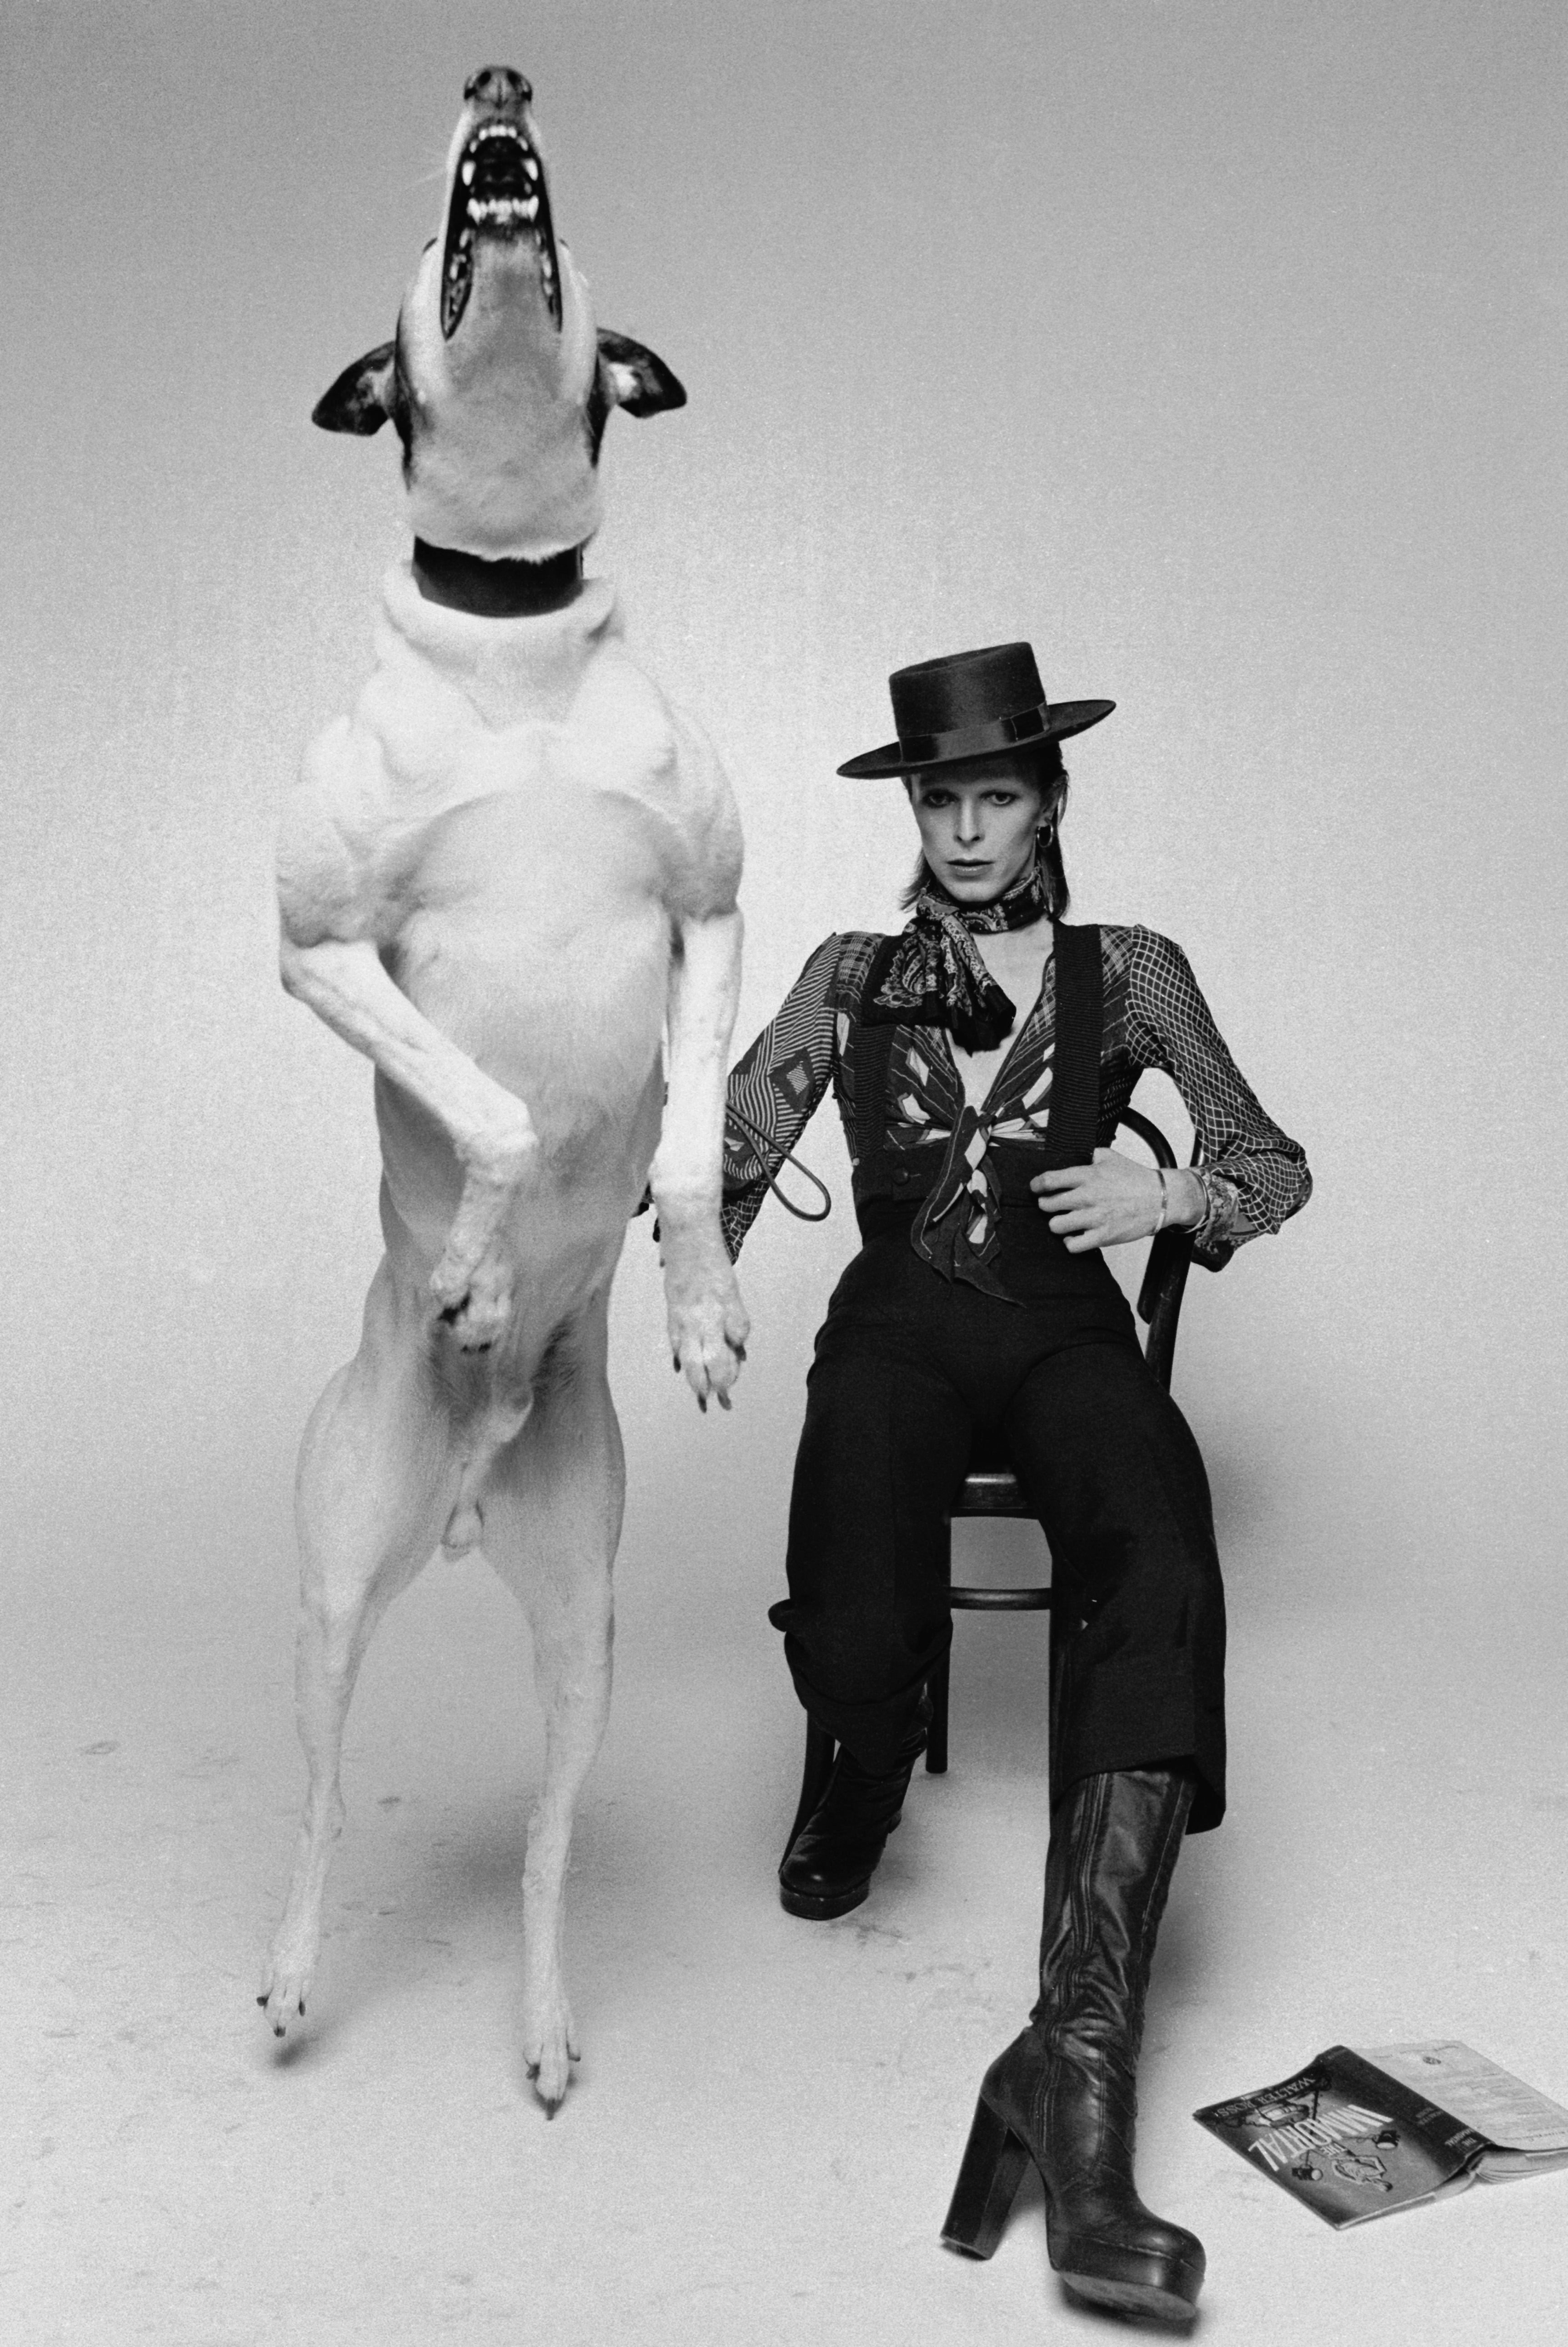 David Bowie is seen with a large barking dog while working on the artwork for his album <i>Diamond Dogs</i> in London in 1974.